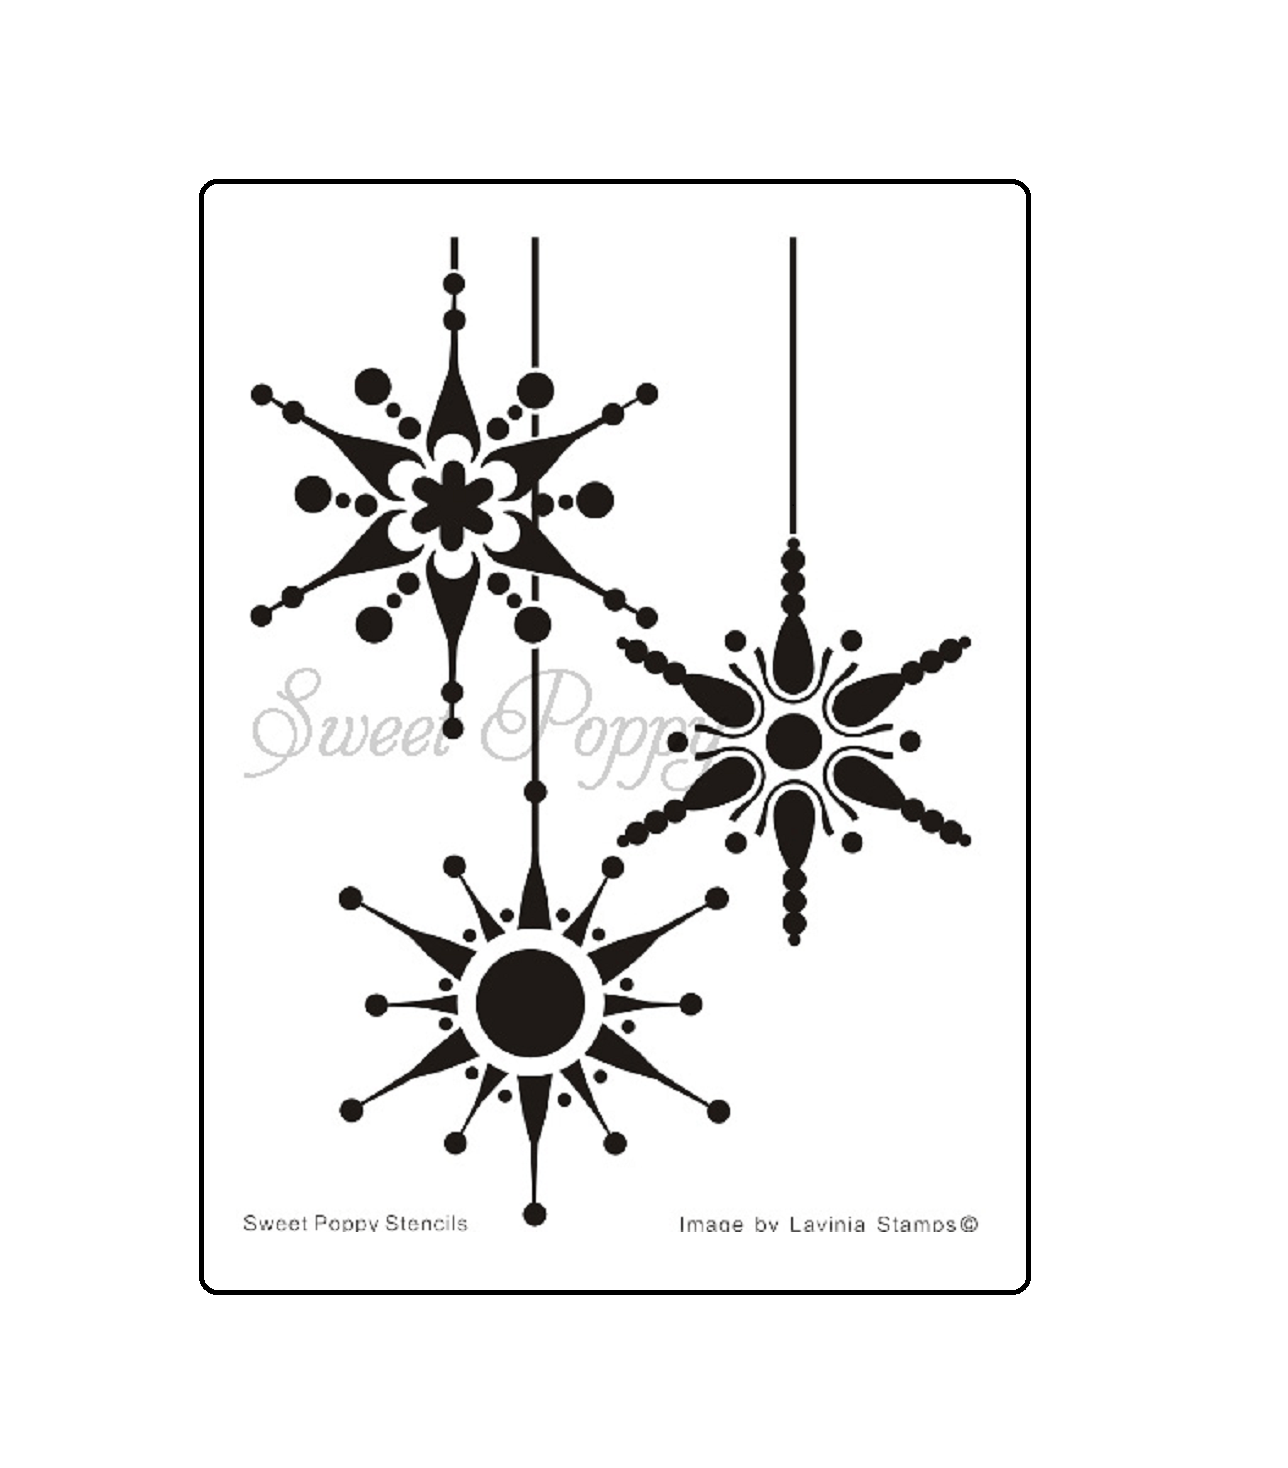 Sweet Poppy Stencil: Snowflake Bauble